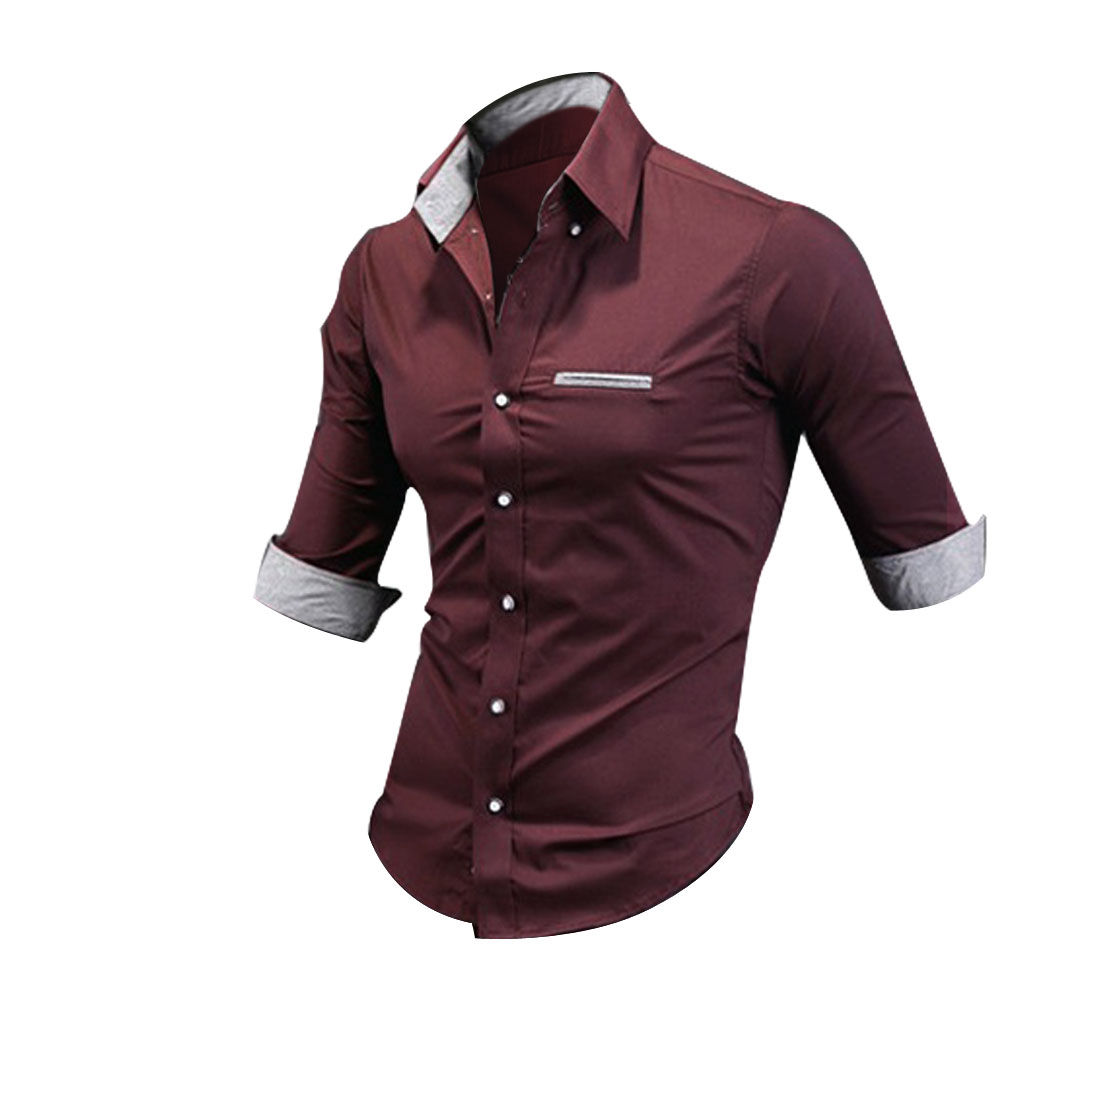 Men Button Closure Point Collar Autumn Shirt Burgundy M